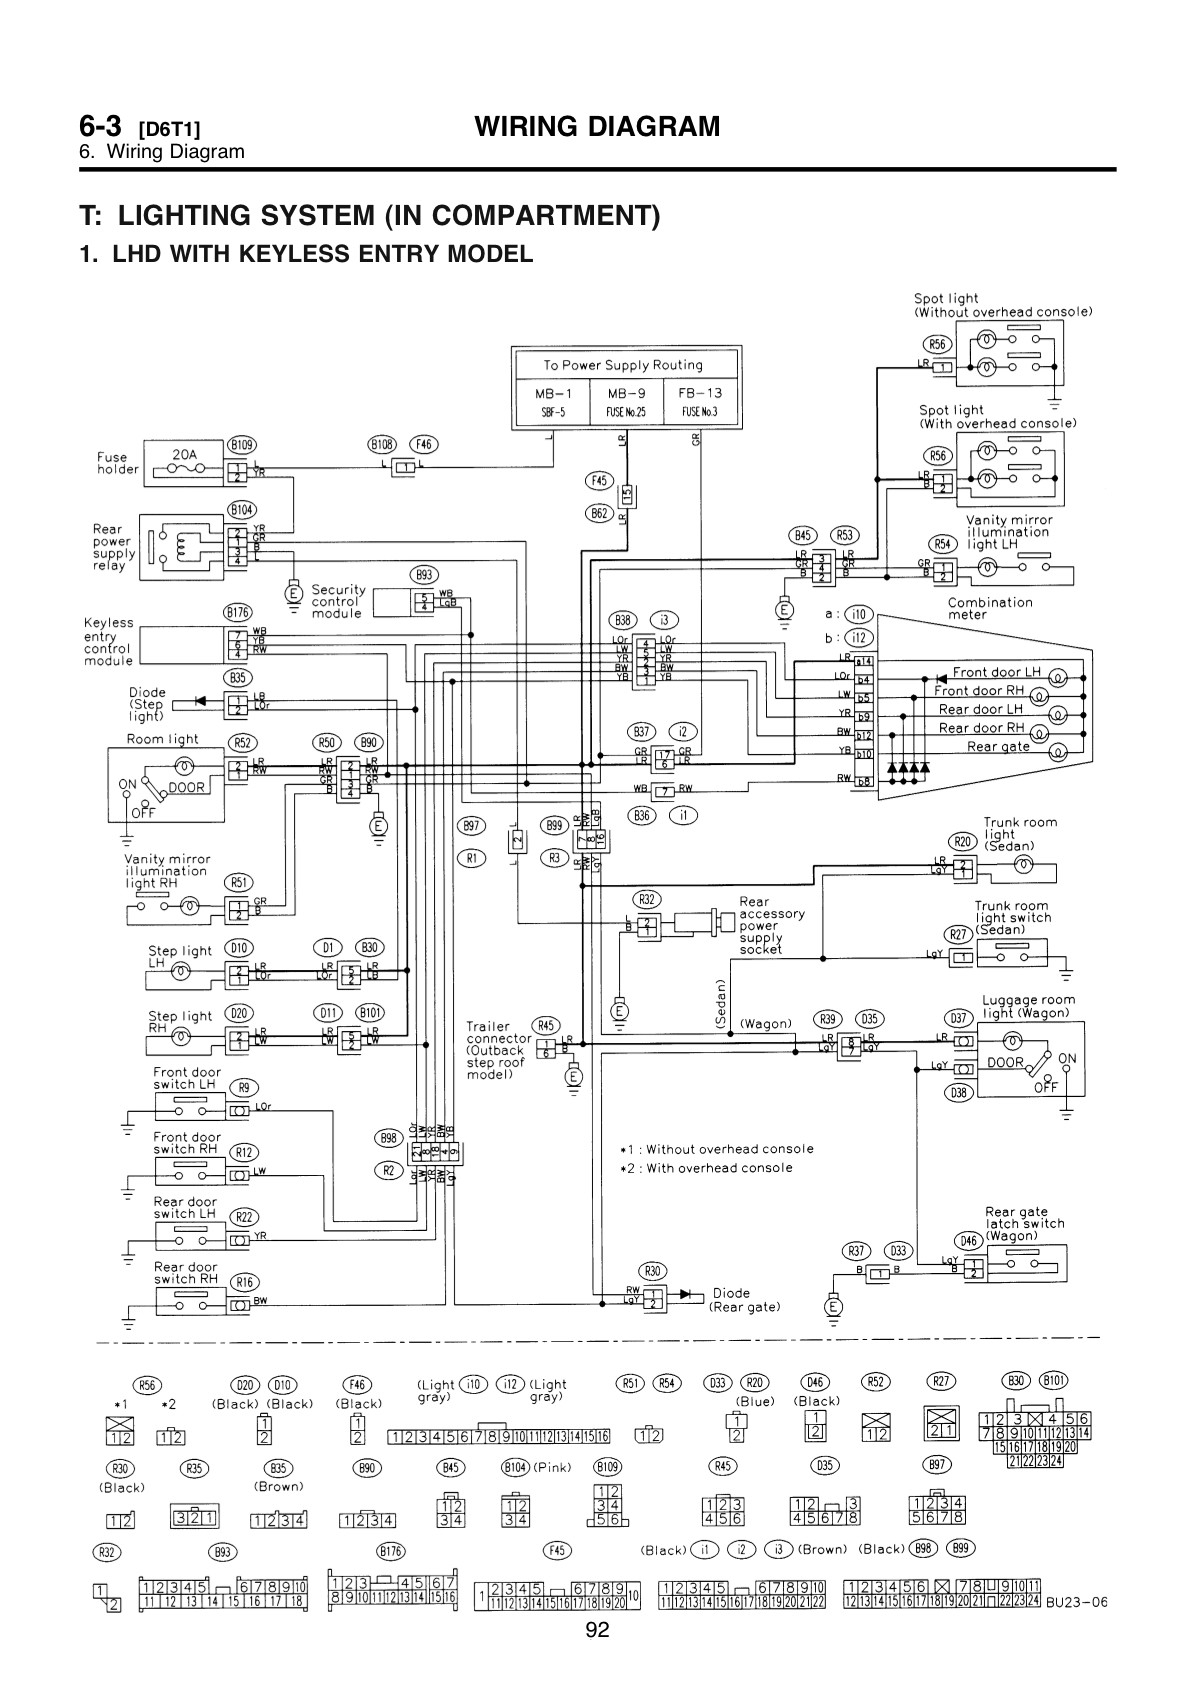 1997 subaru legacy stereo wiring diagram Collection-Car Stereo Wiring Diagram Subaru Fresh 1997 Subaru Legacy Wiring Diagram Beautiful Wiring Schmatic 98 16-b